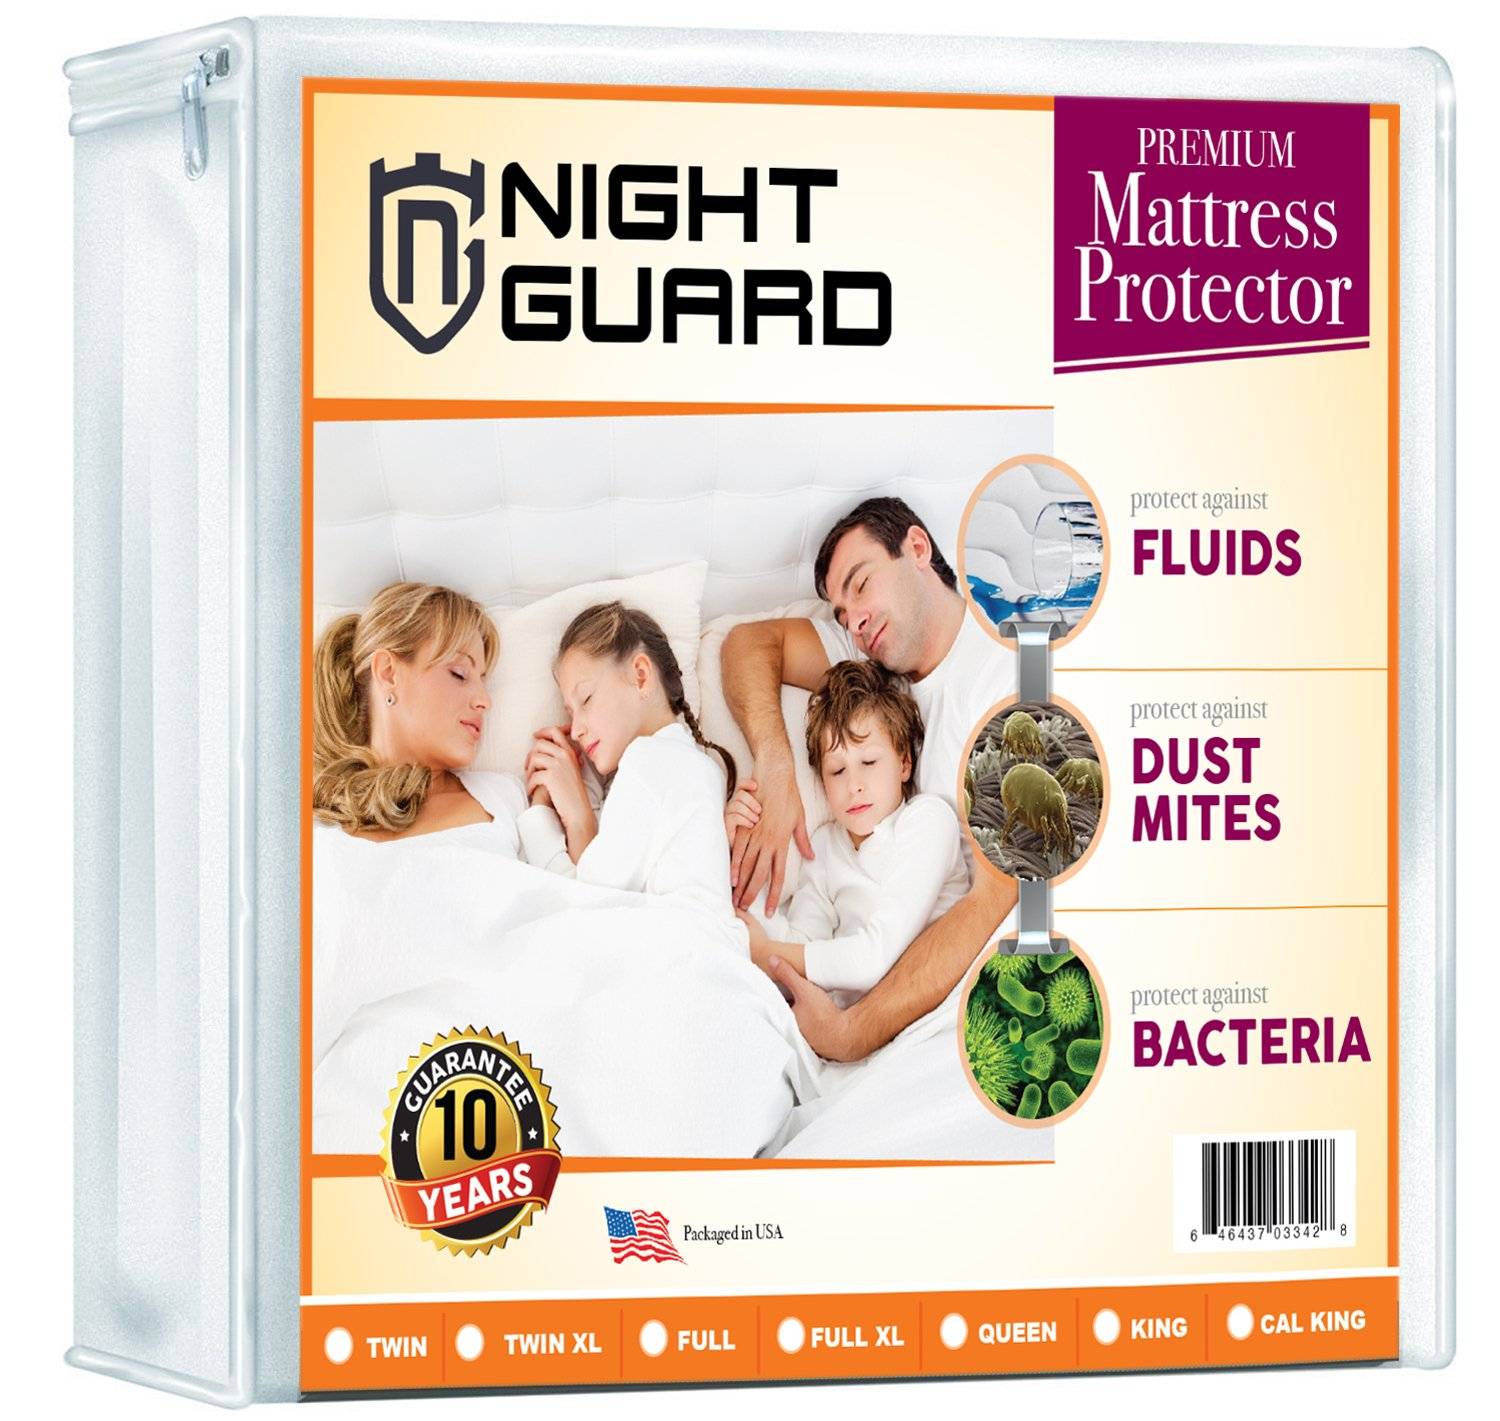 Night Guard Mattress Protector Premium Hypoallergenic Waterproof - Vinyl-Free - 130gsm - Fits Mattresses Up To 14 Inch Size - 38''x 75'' (Twin)